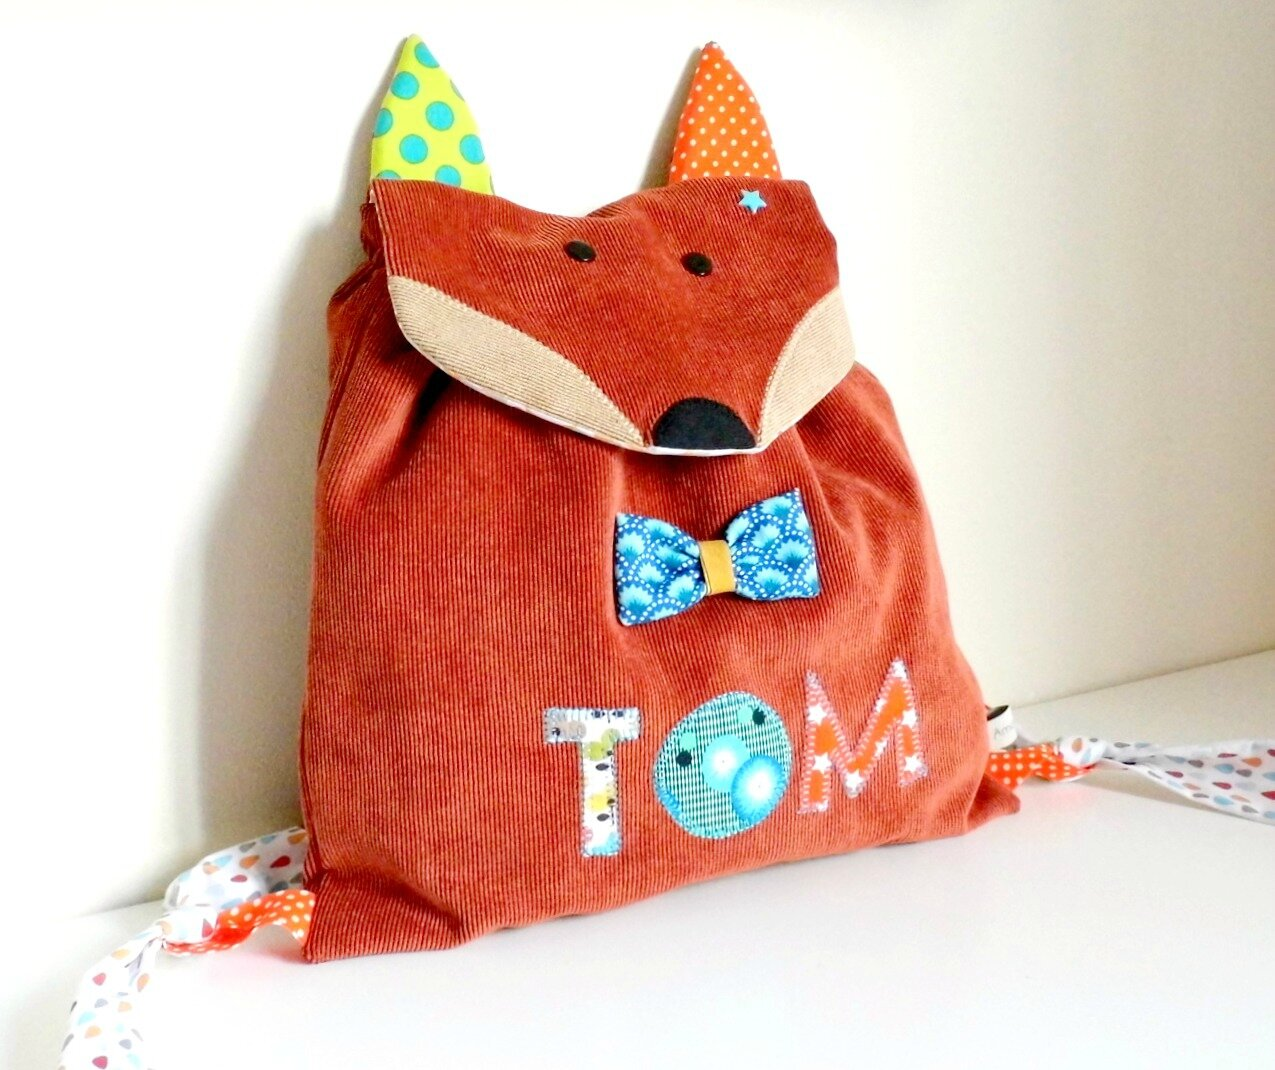 Sac maternelle personnalisable renard